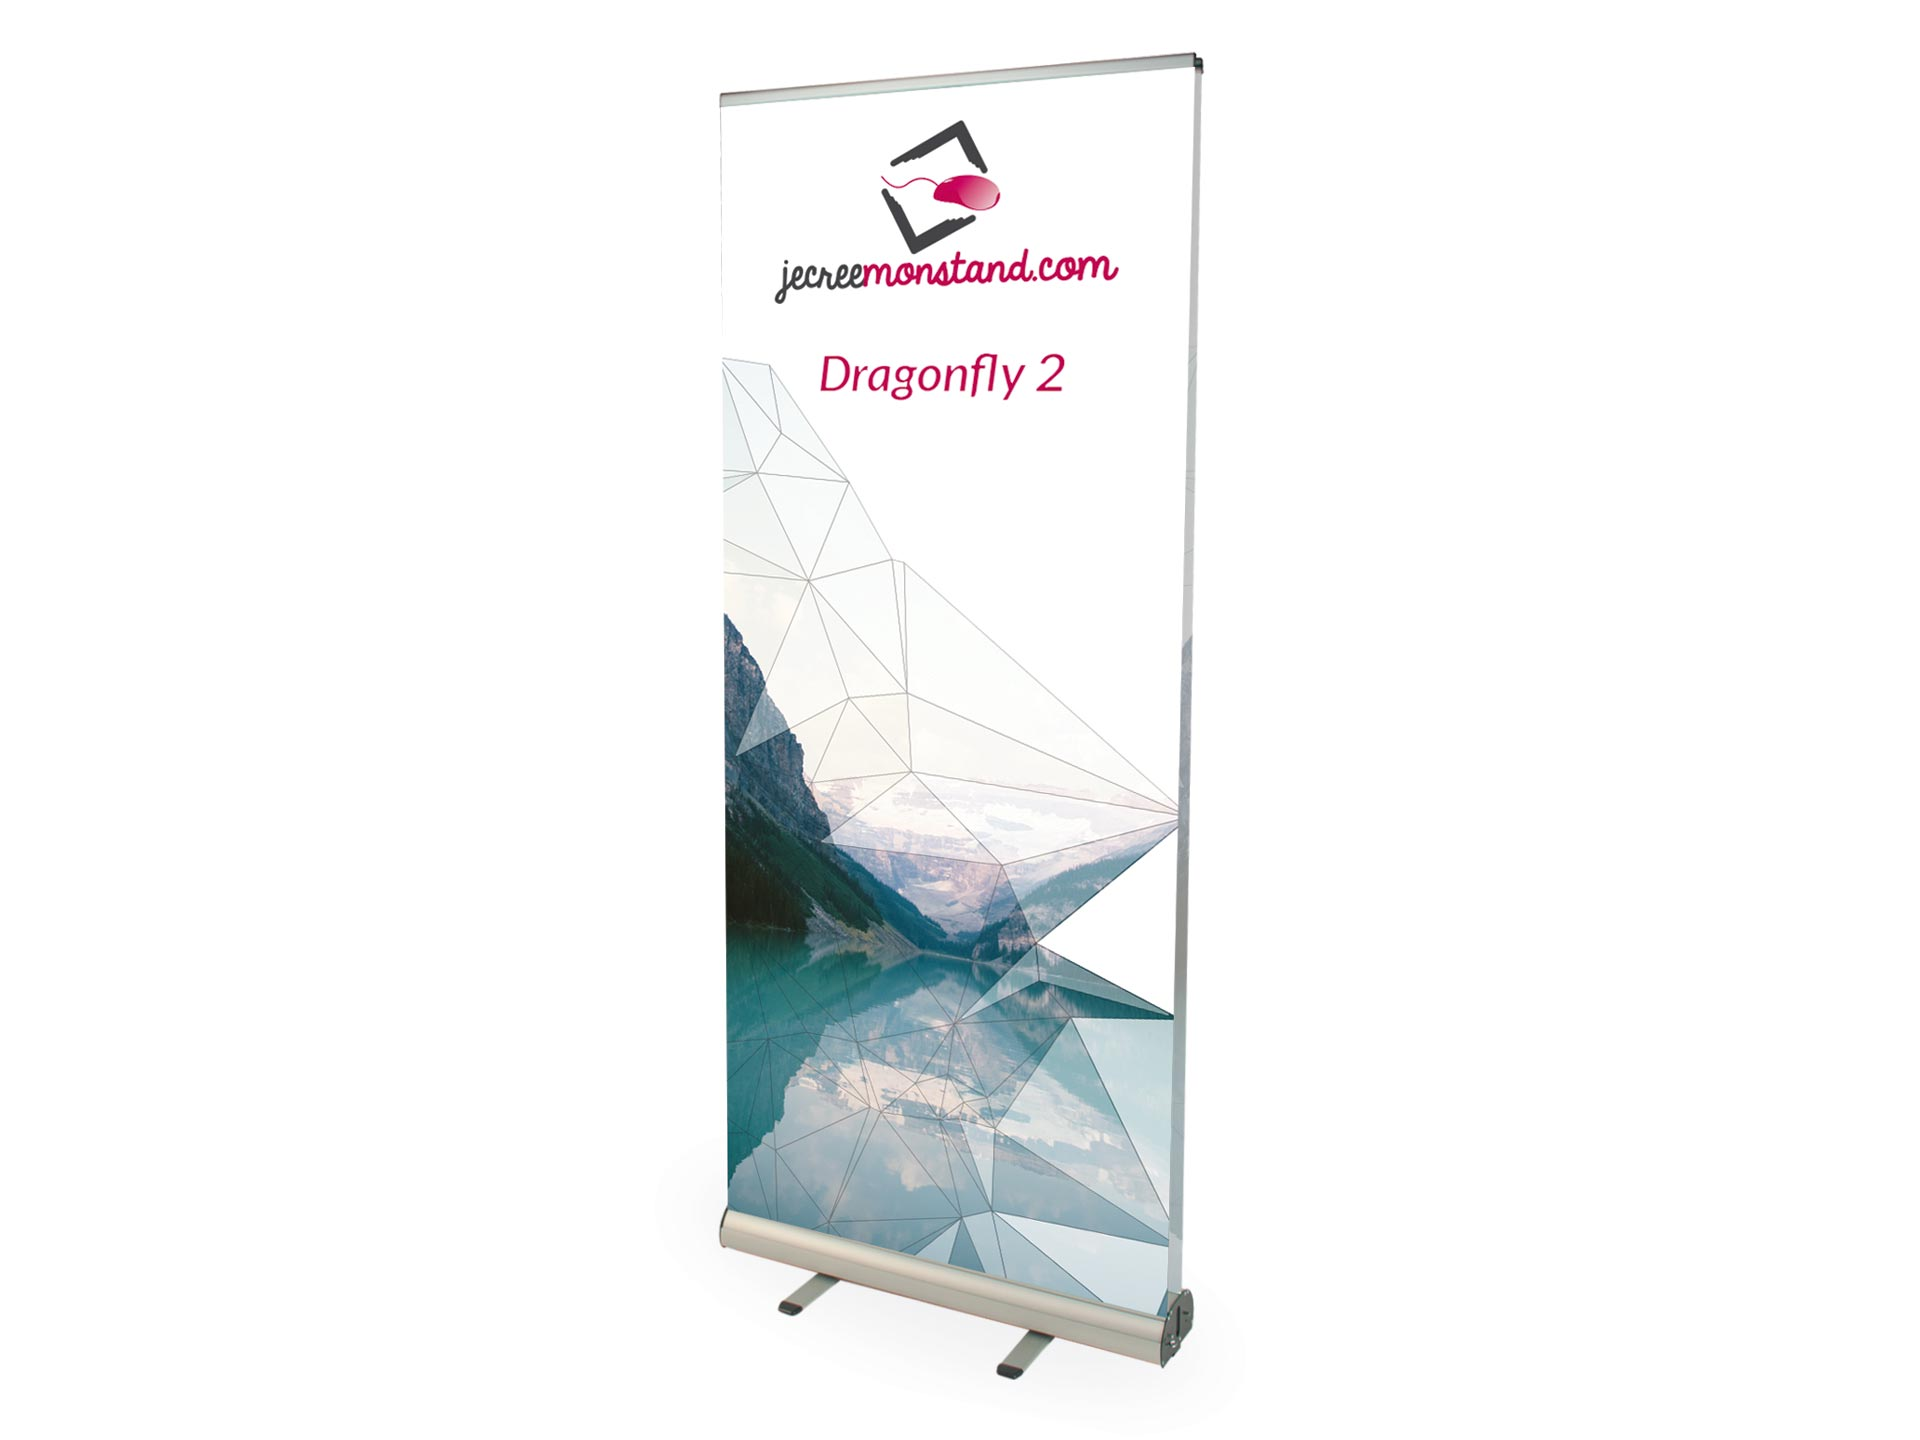 Enrouleur, Roll-up Dragonfly recto-verso pour stand exposant